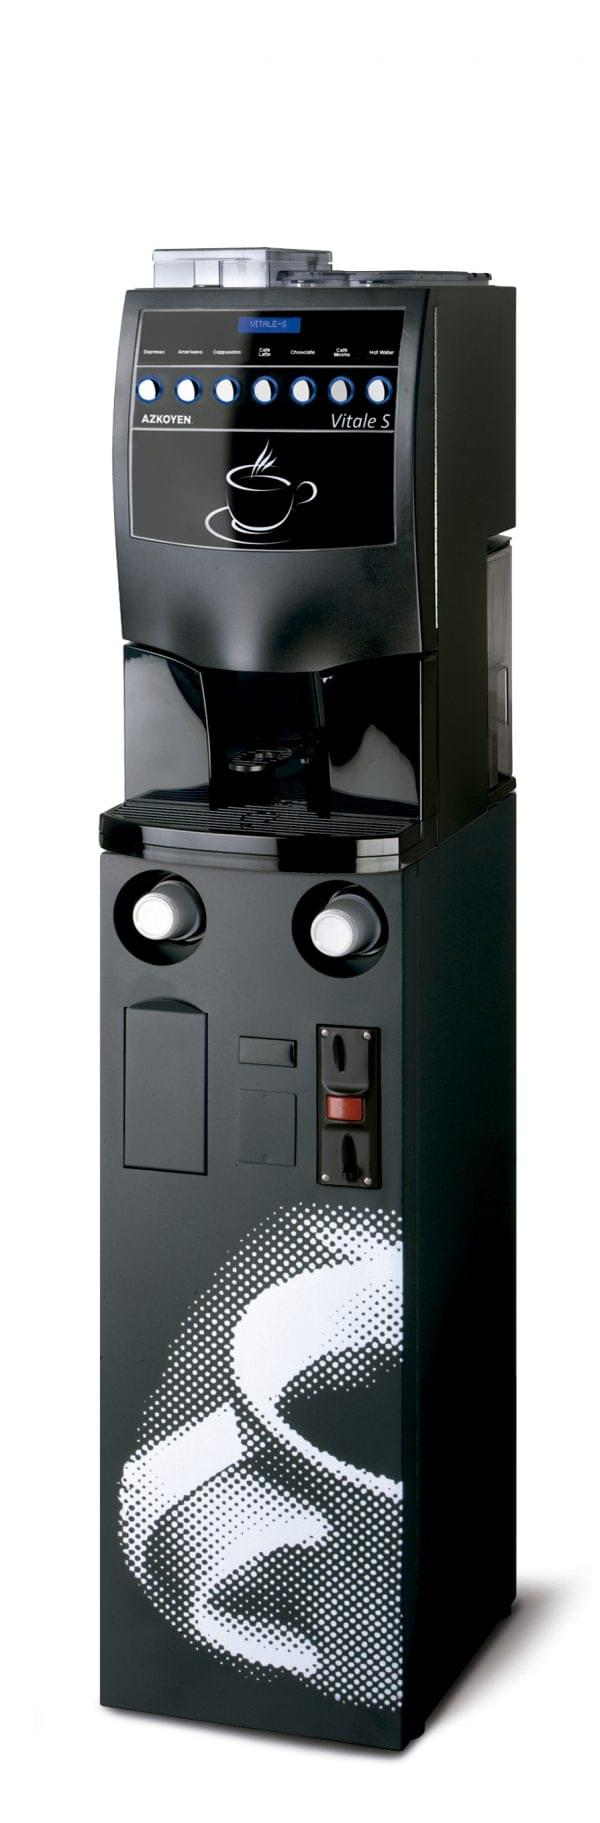 Vitale S Espresso 2+ Coffee Machine 5